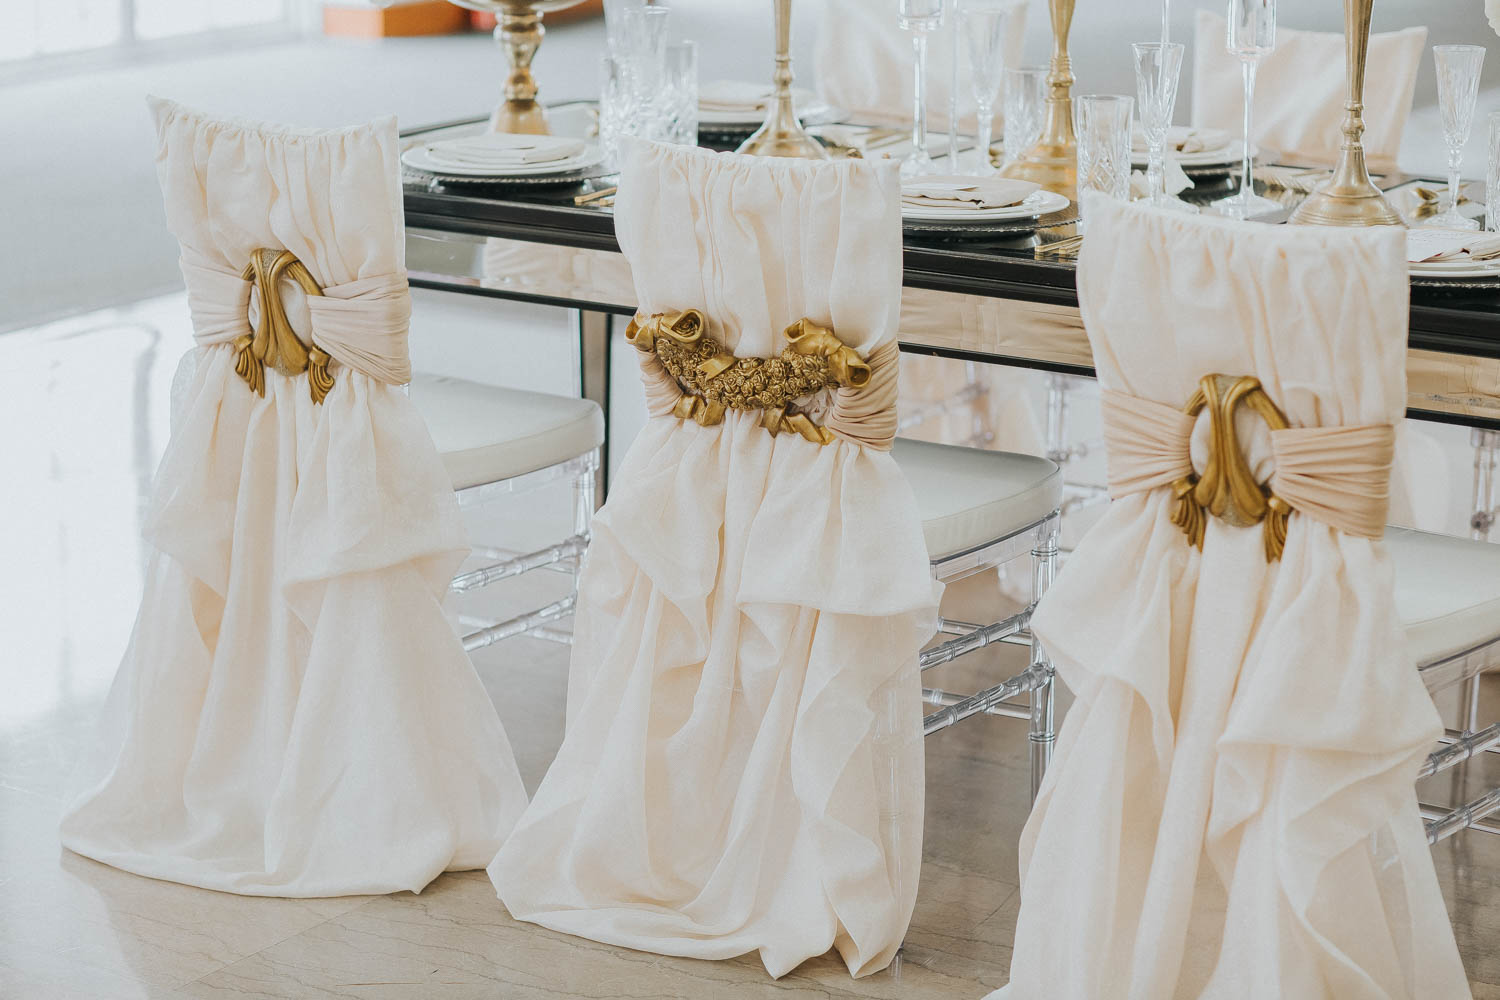 Chic Old Hollywood Wedding Inspiration at The Vault in Tampa, FL ...